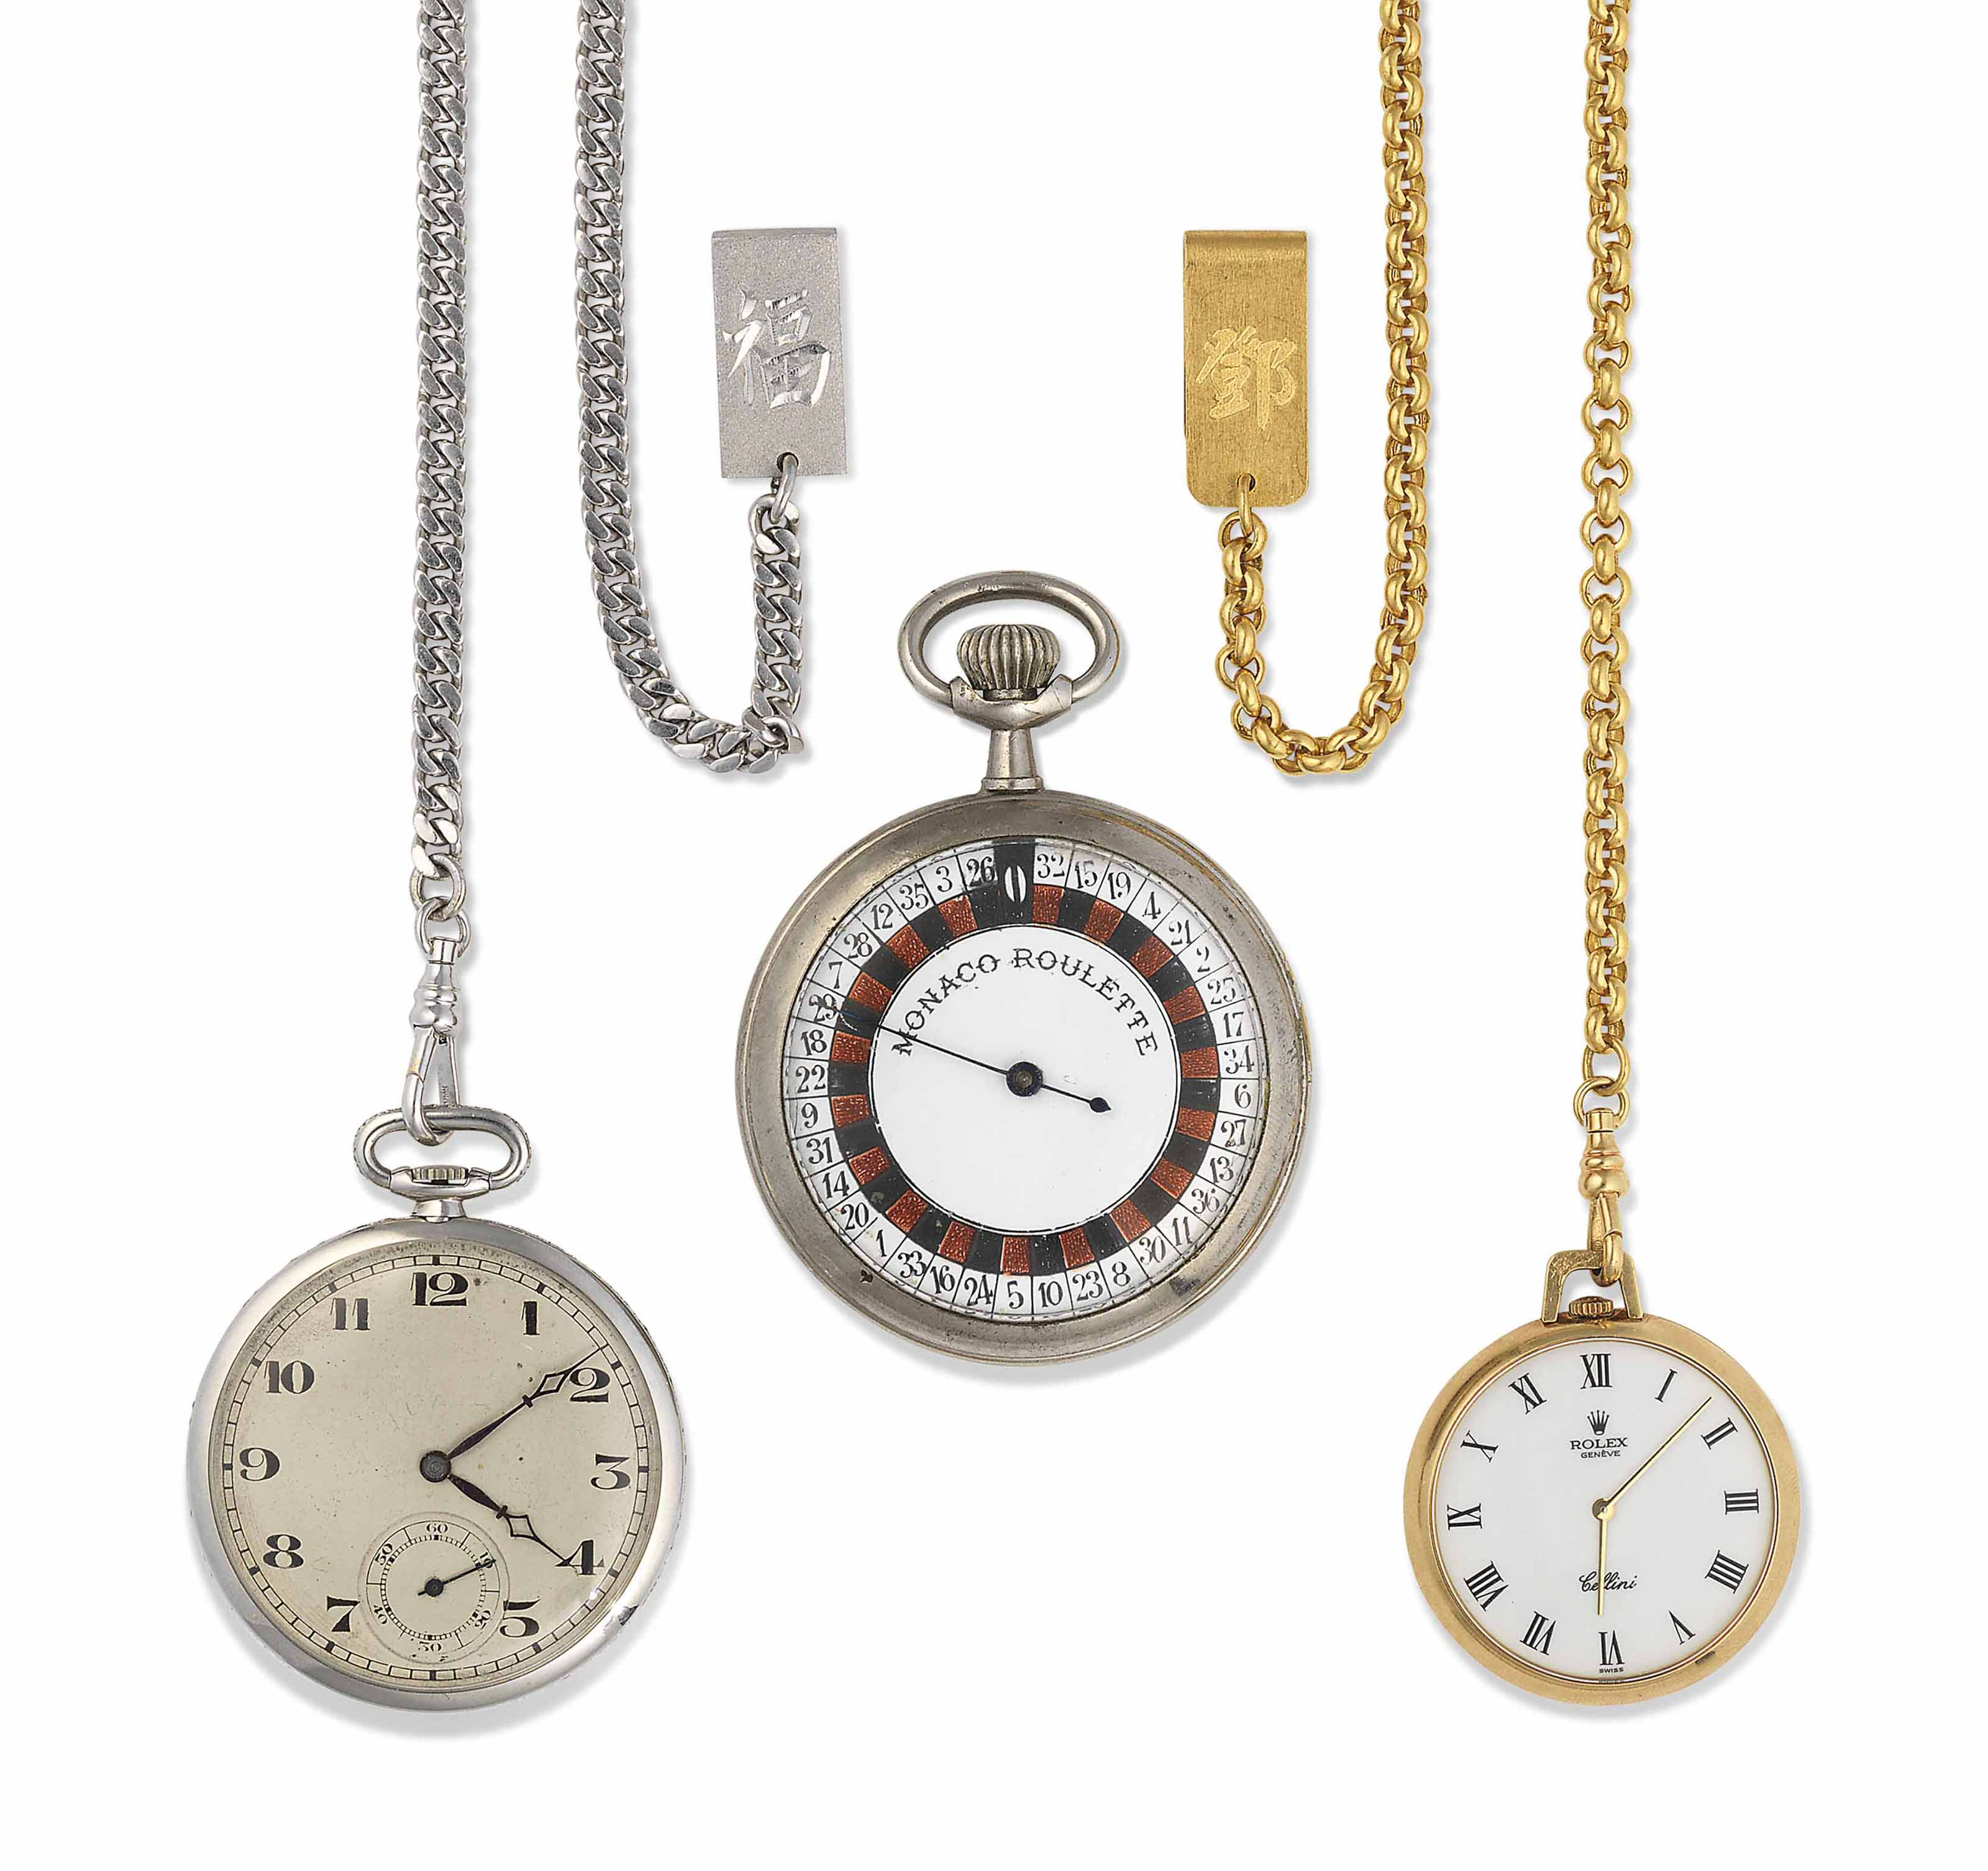 A PLATINUM AND DIAMOND POCKET WATCH